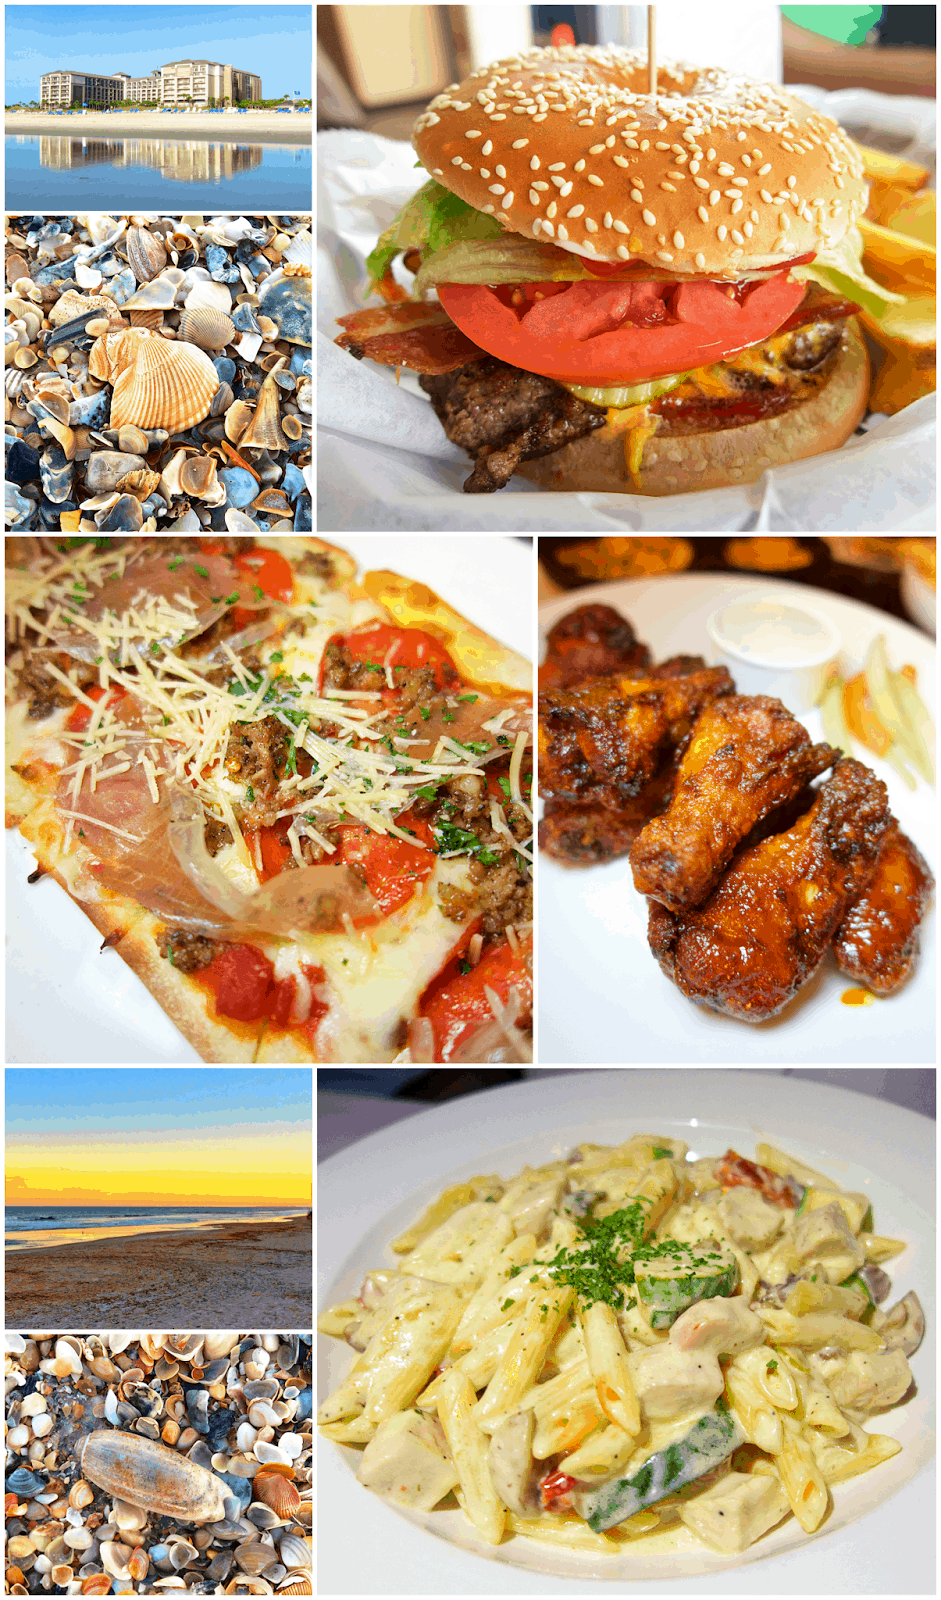 Amelia Island, Florida - Where to Stay, What to Do and Where to Eat! Golf, Spa, the Beach - Burgers, great Italian food and THE BEST wings EVER!